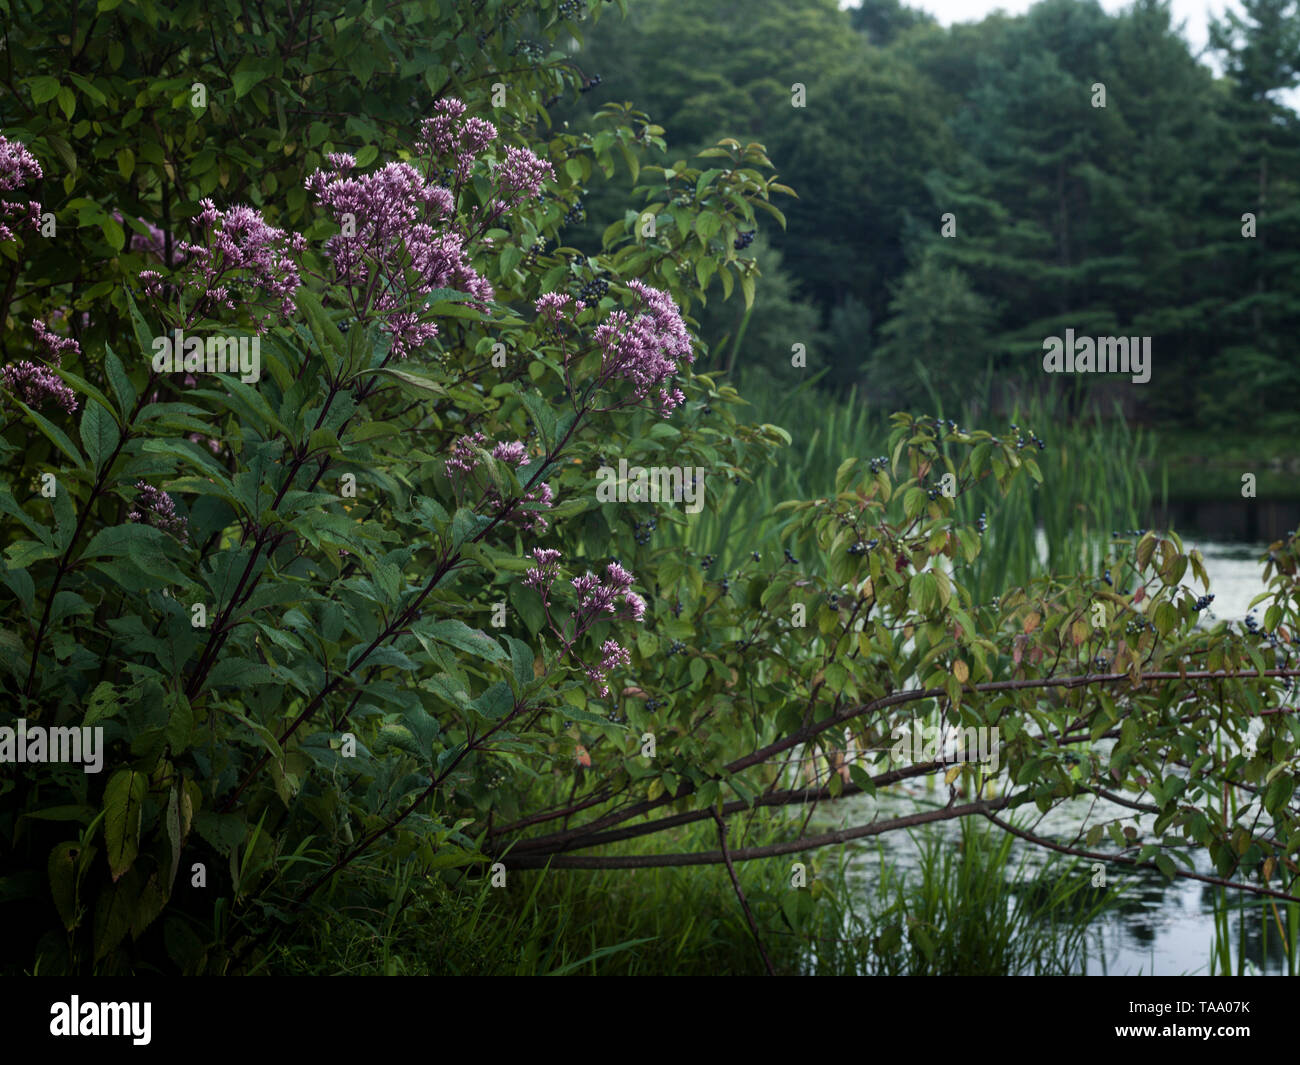 Dusty Pink Joe Pye Flowers Leaning over Pond at Dusk - Stock Image